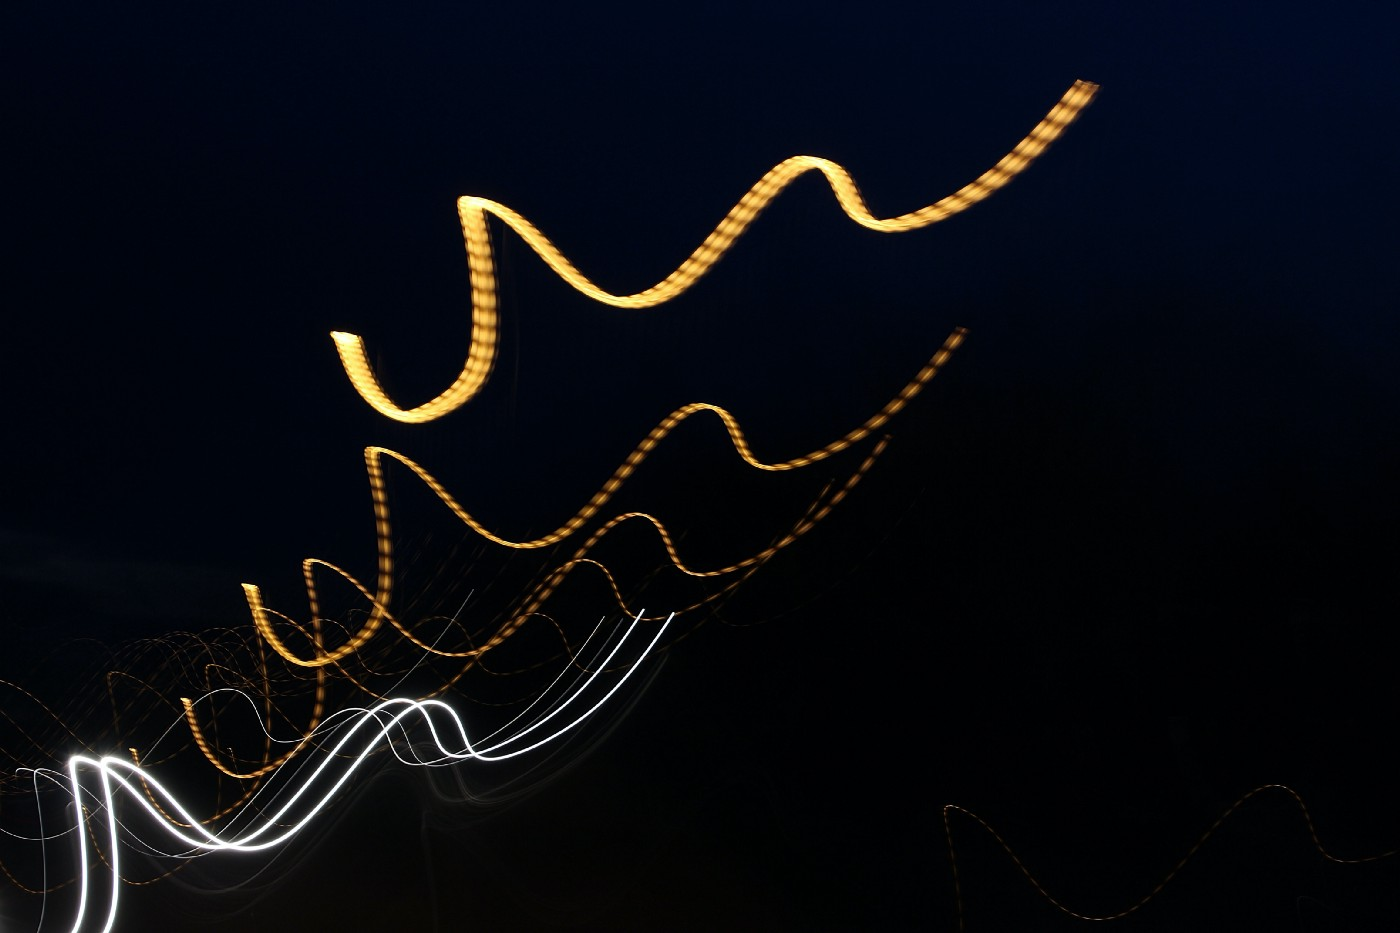 decorative image of abstract strings of lights